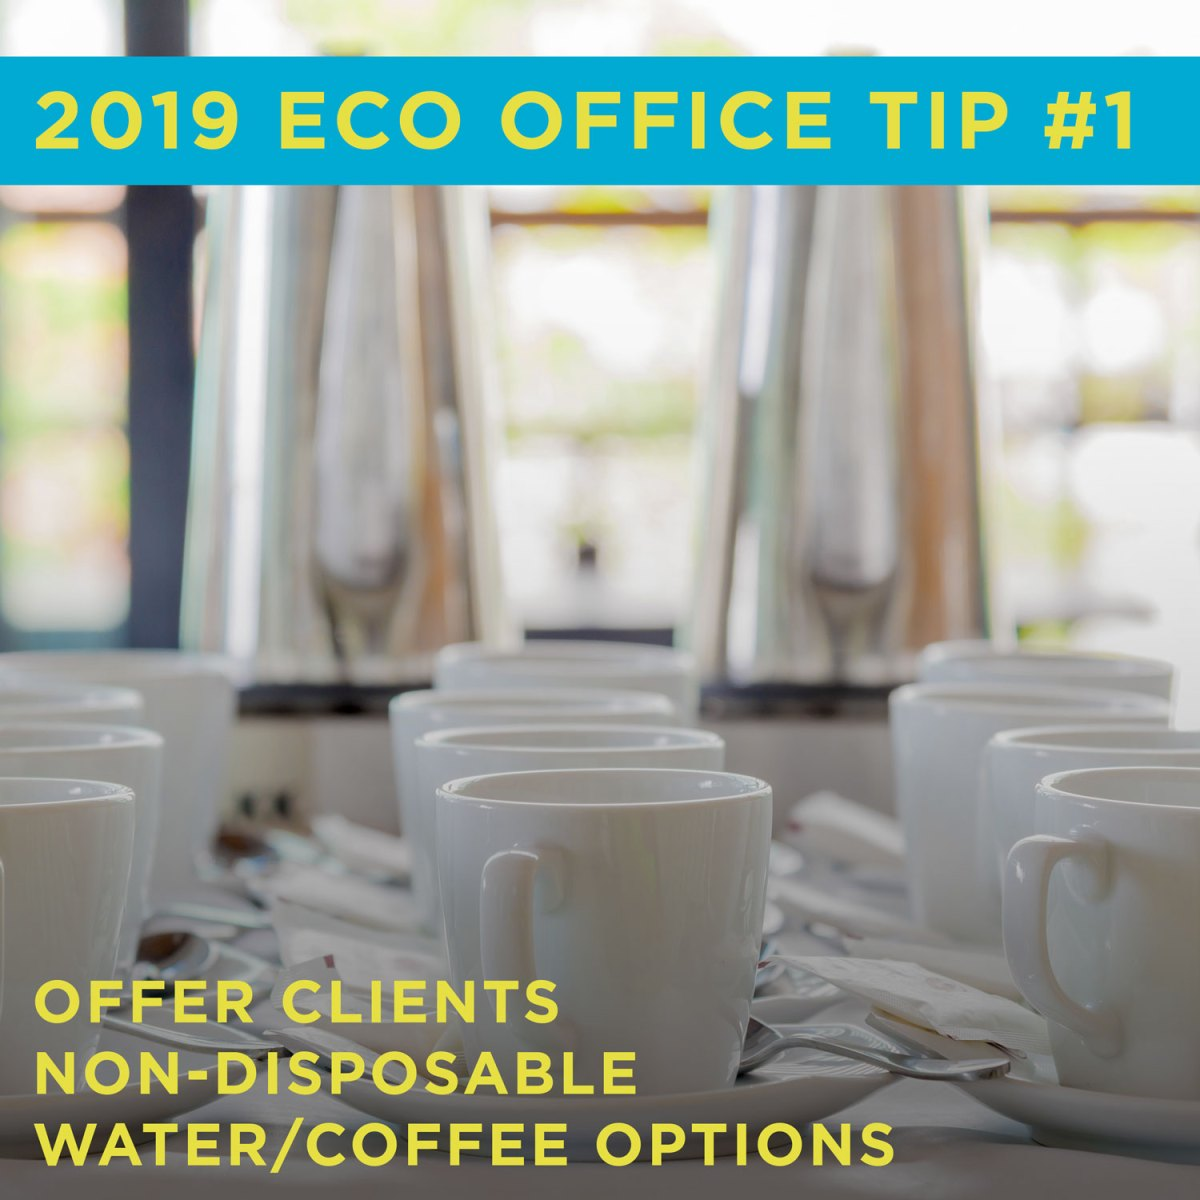 Eco Friendly Office Tip 1: Offer your clients non-disposable water and coffee options